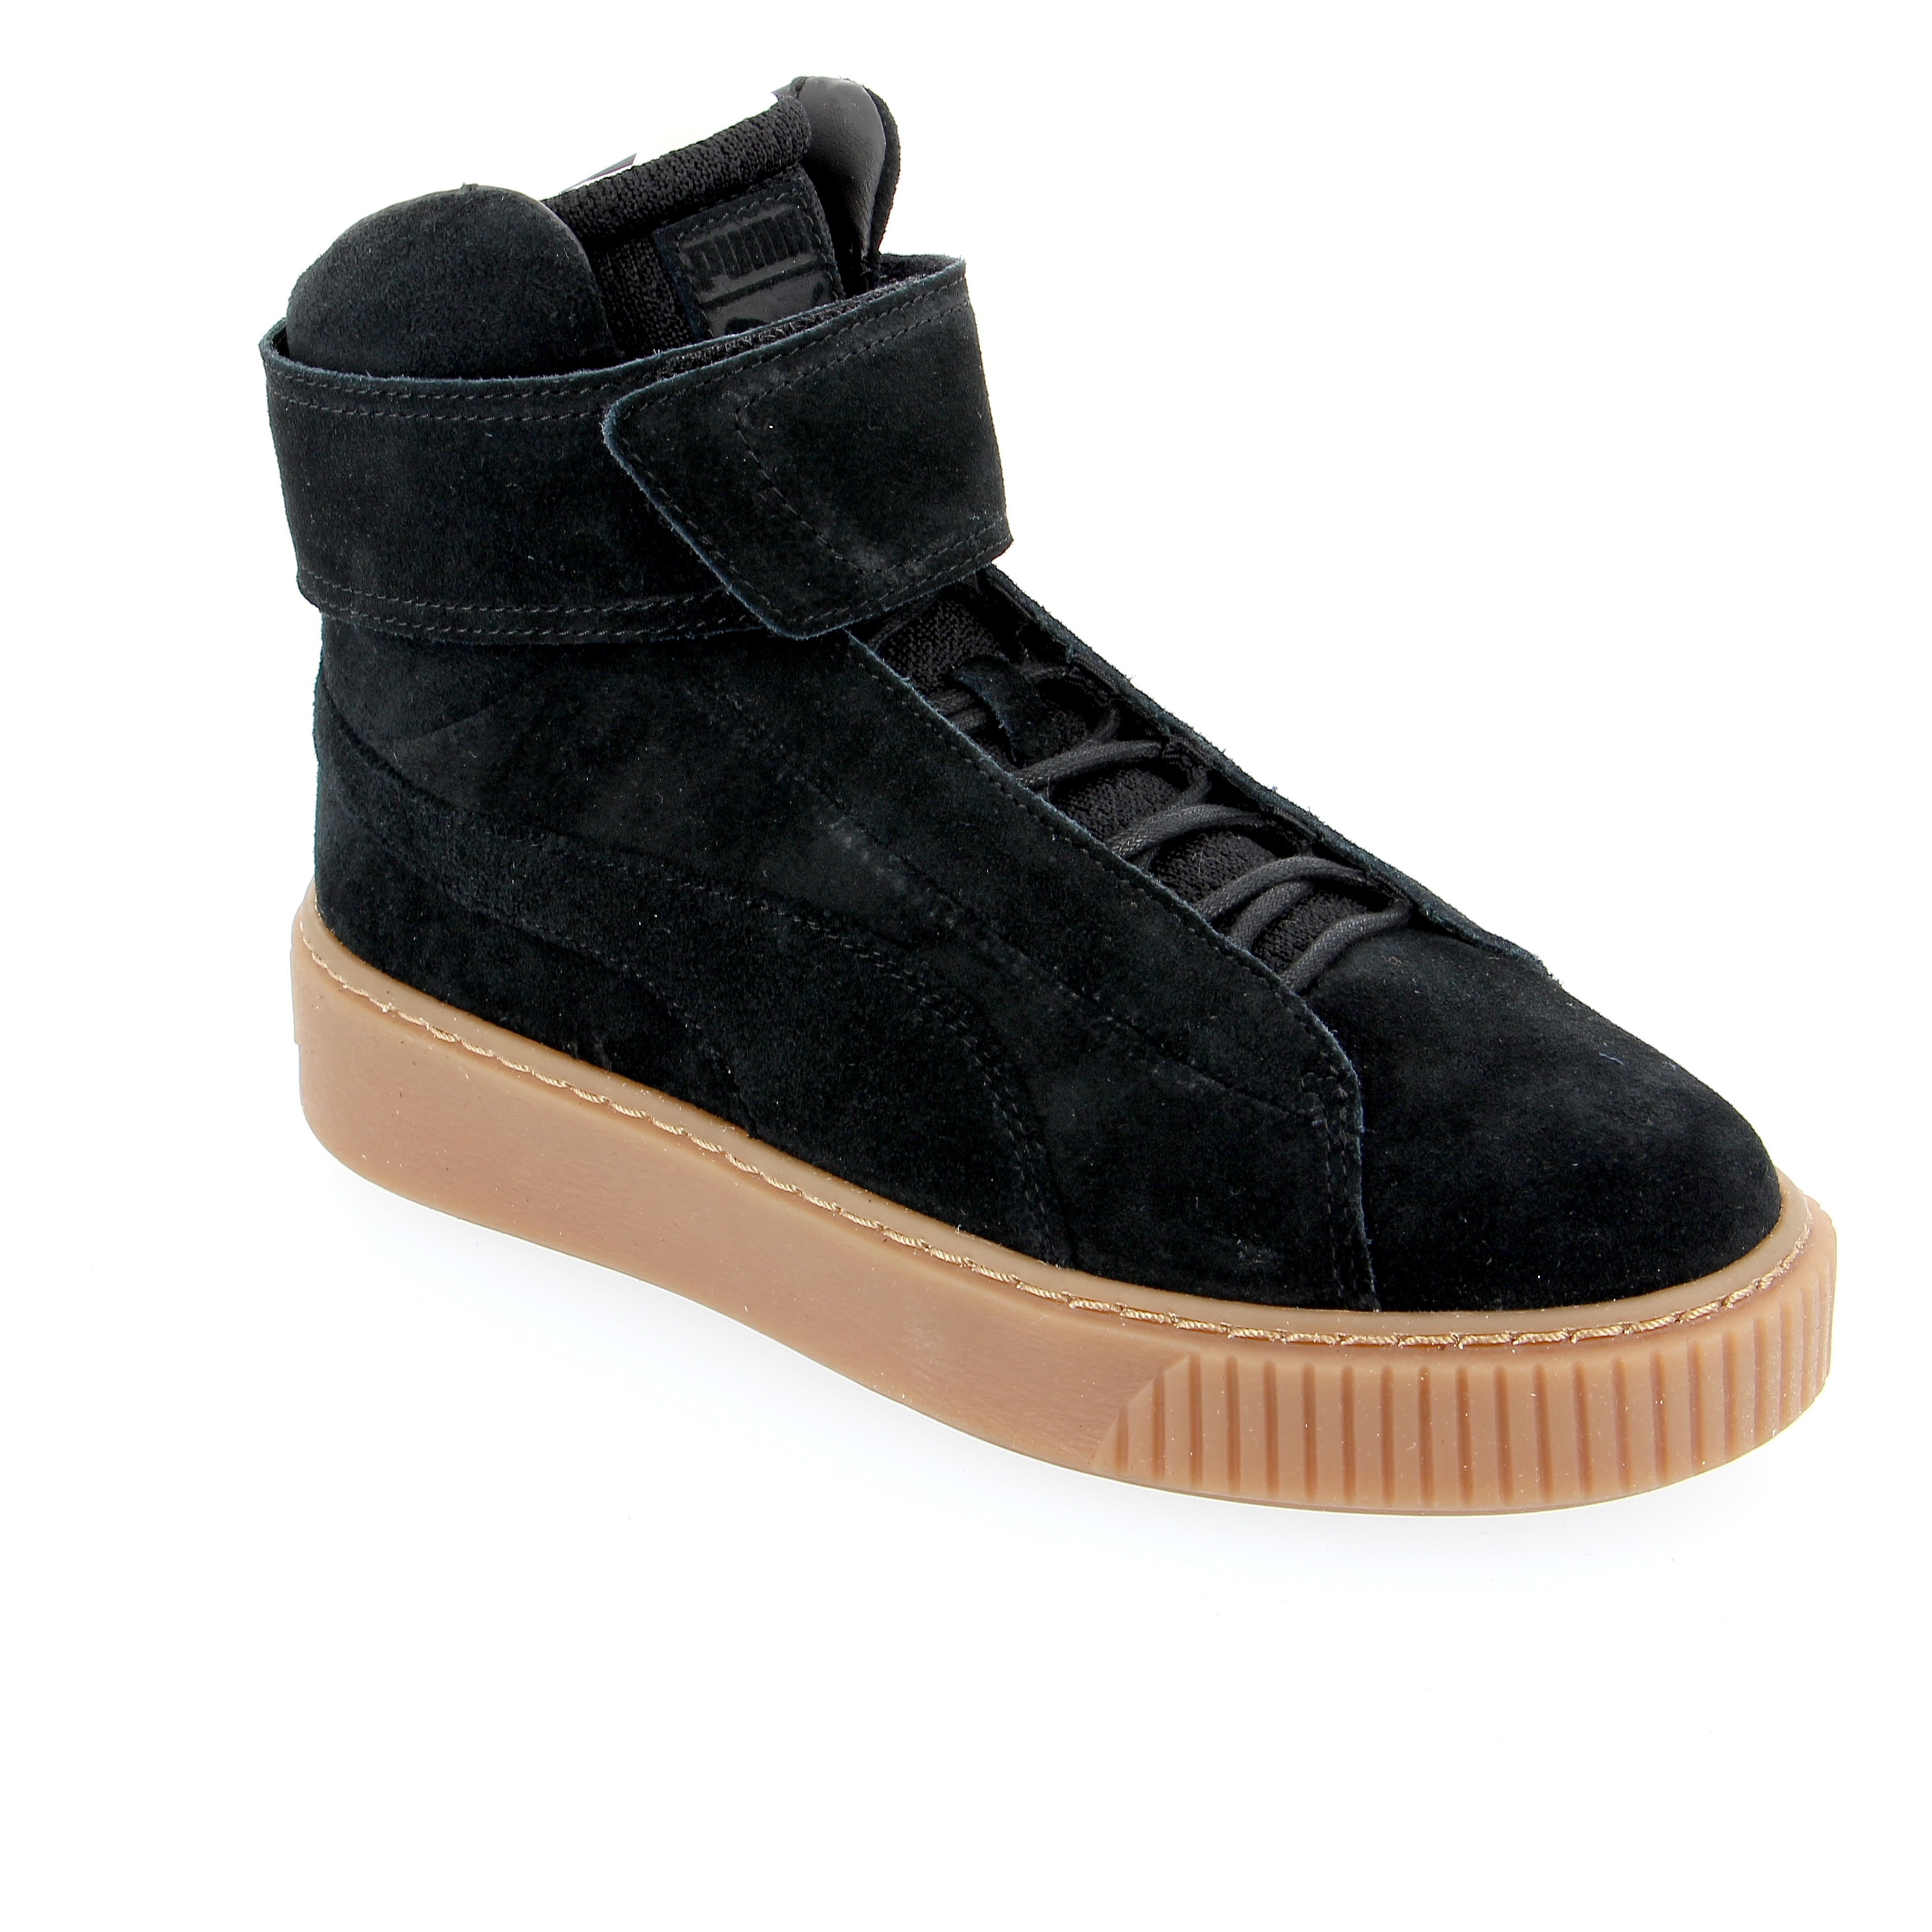 Puma Bottines noir